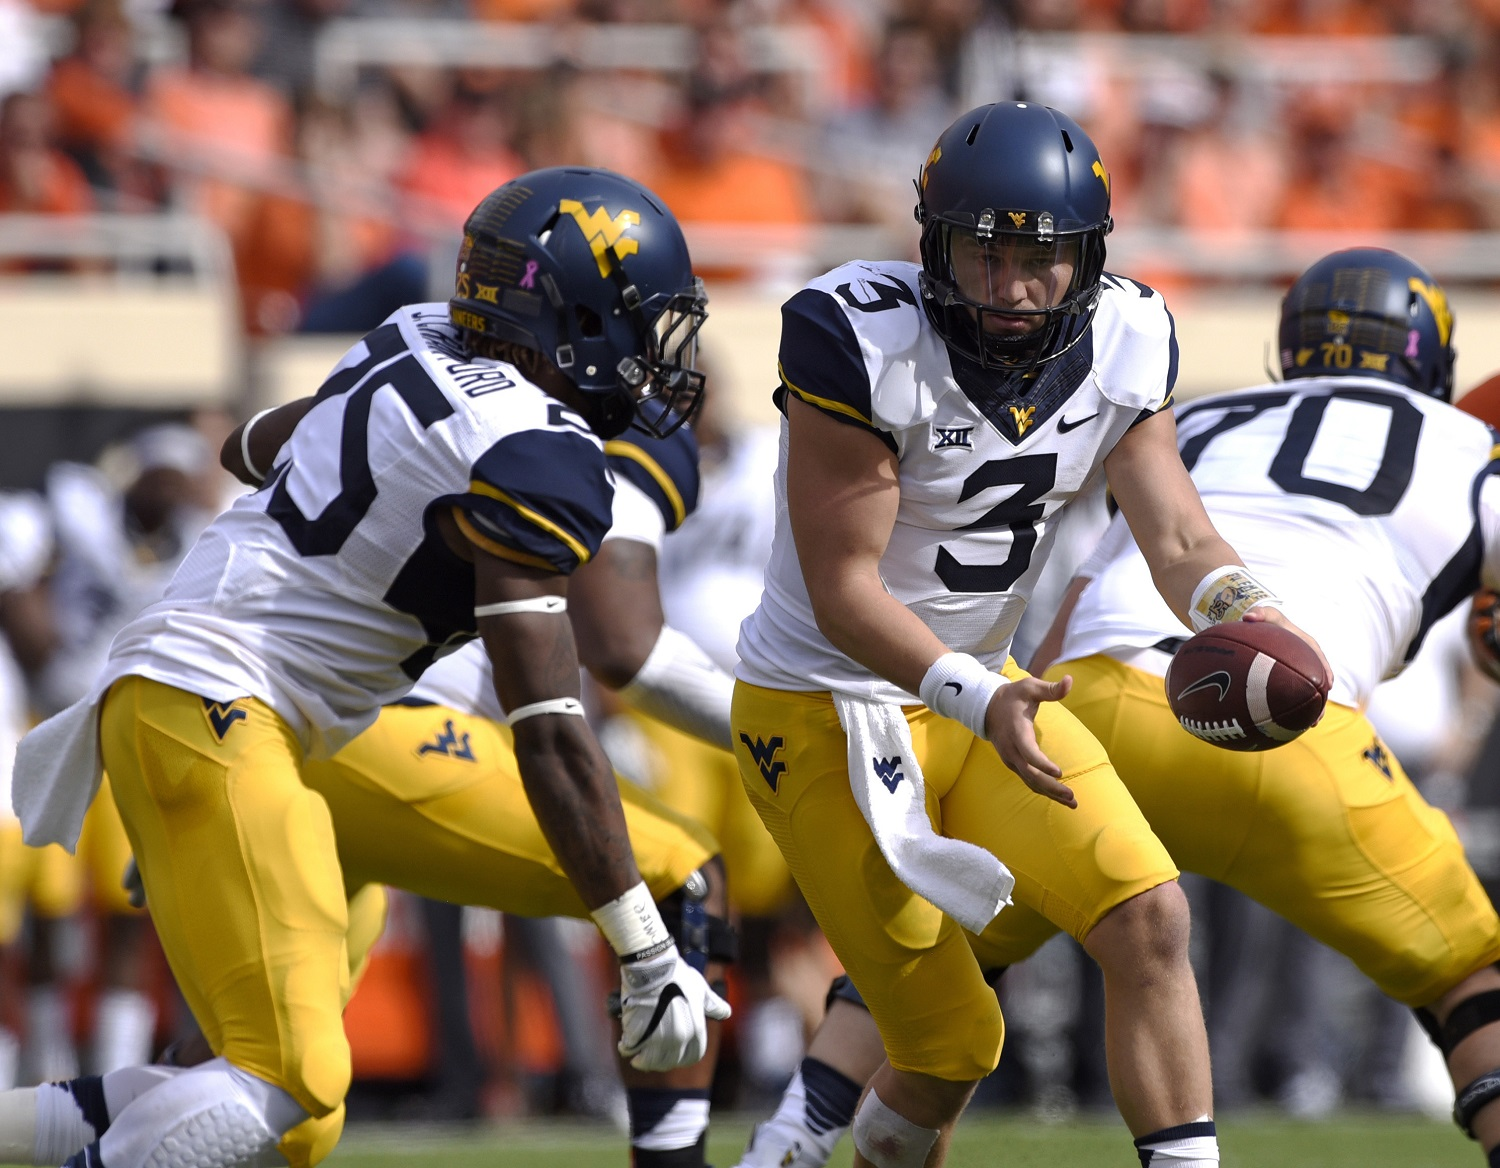 FILE - In this Oct. 29, 2016, file photo, West Virginia quarterback Skyler Howard (3) hands off to running back Justin Crawford during the team's NCAA college football game against Oklahoma State in Stillwater, Okla. West Virginia travels to play Texas this week. (AP Photo/Brody Schmidt, File)